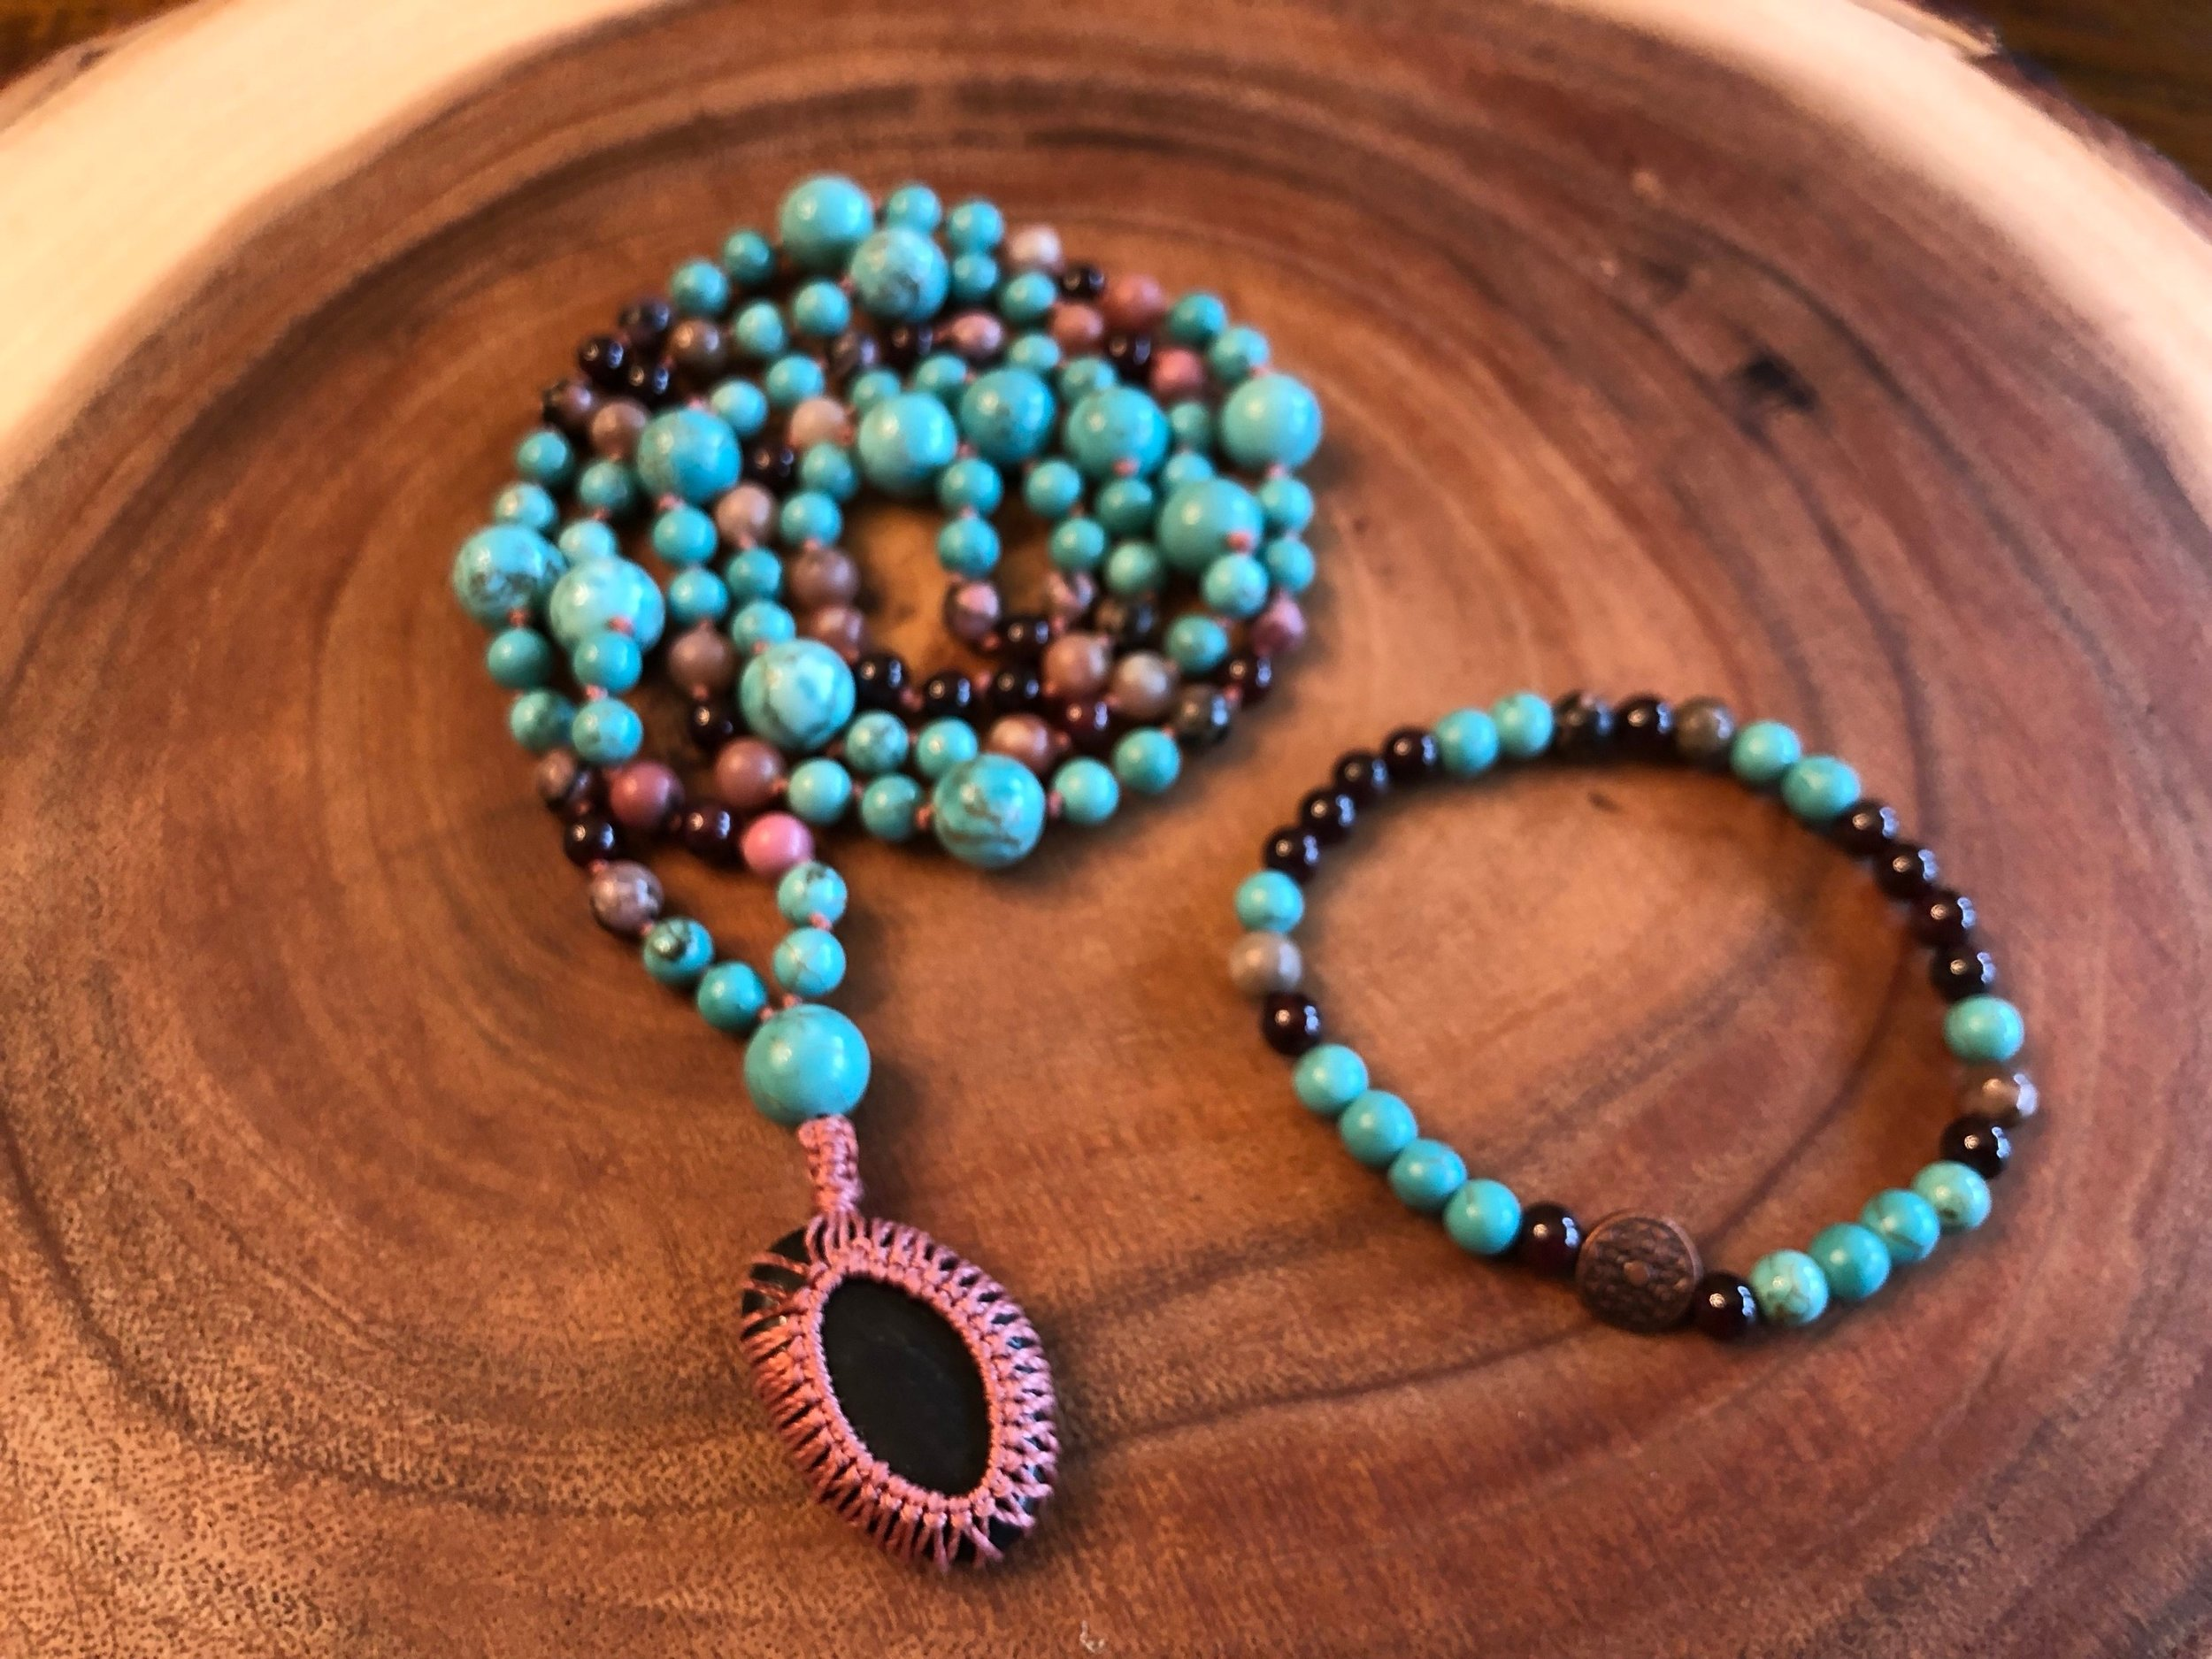 ♡ Turquoise - protection ♡  ♡ Rhodonite - serenity & healing ♡  ♡ Garnet - balance & luck ♡